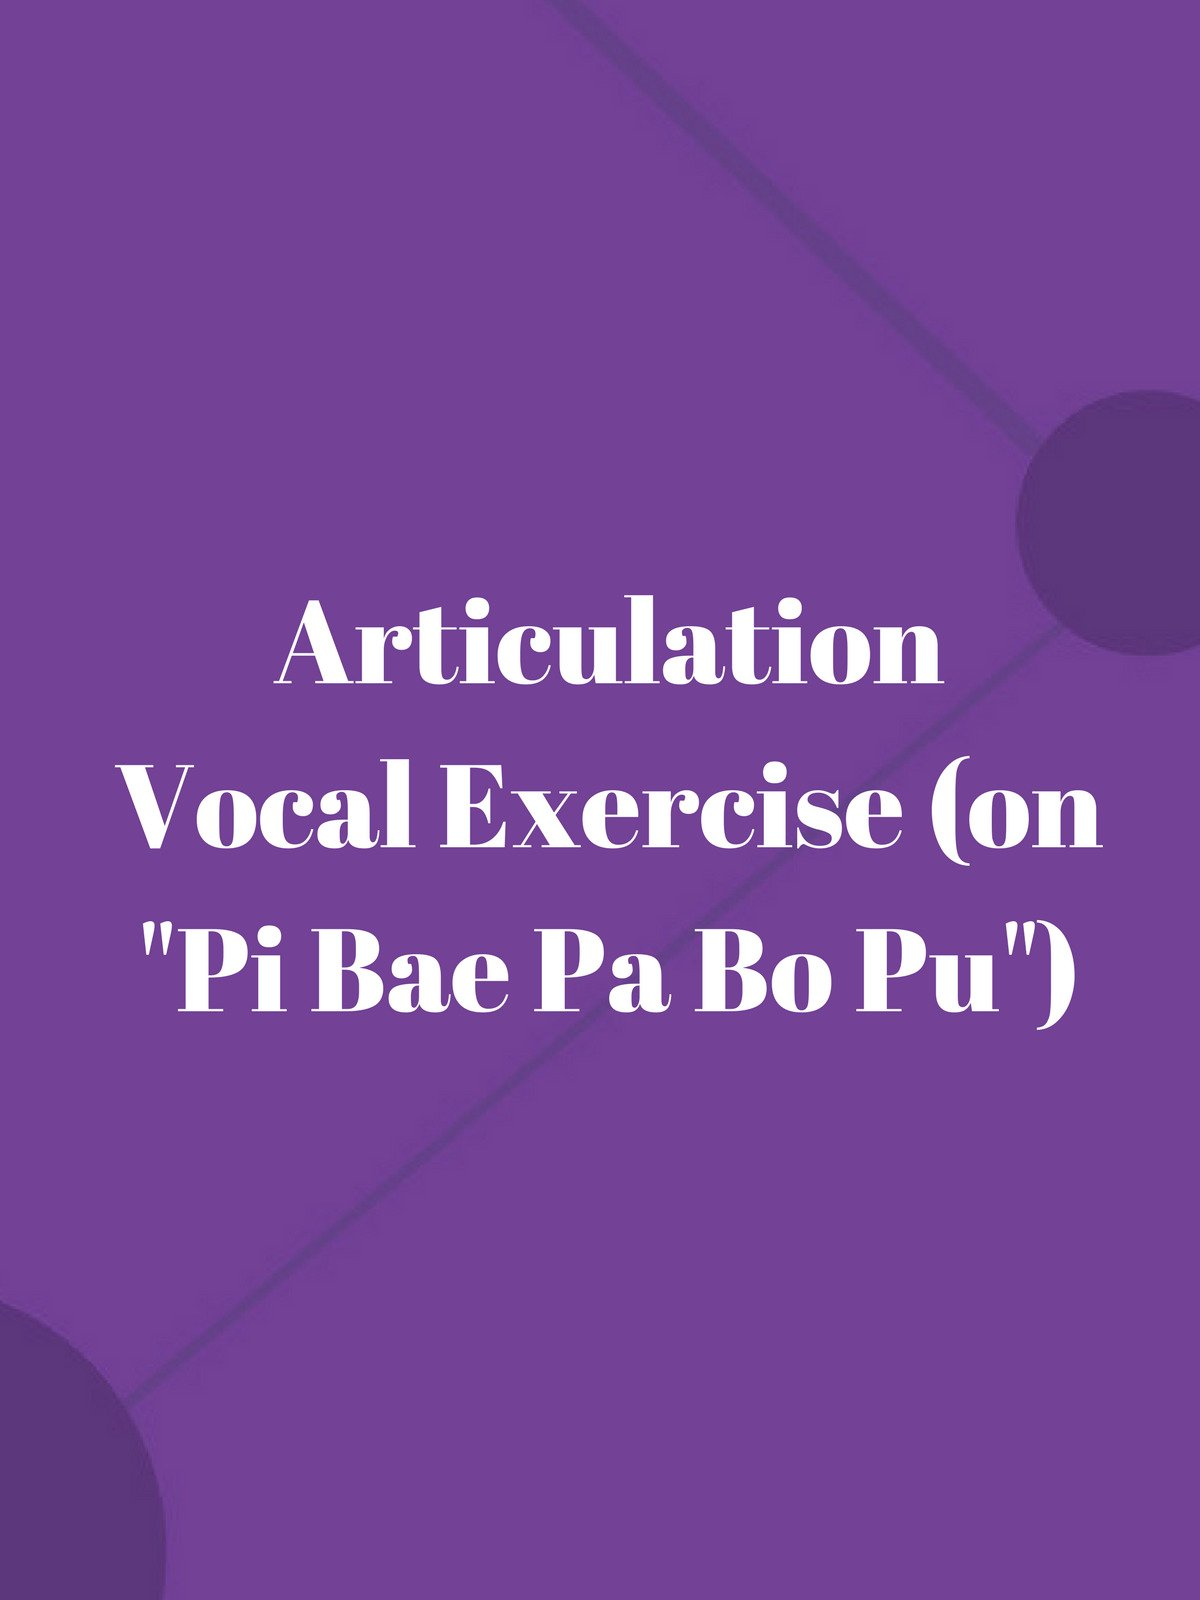 "Articulation Vocal Exercise (on ""Pi Bae Pa Bo Pu"")"